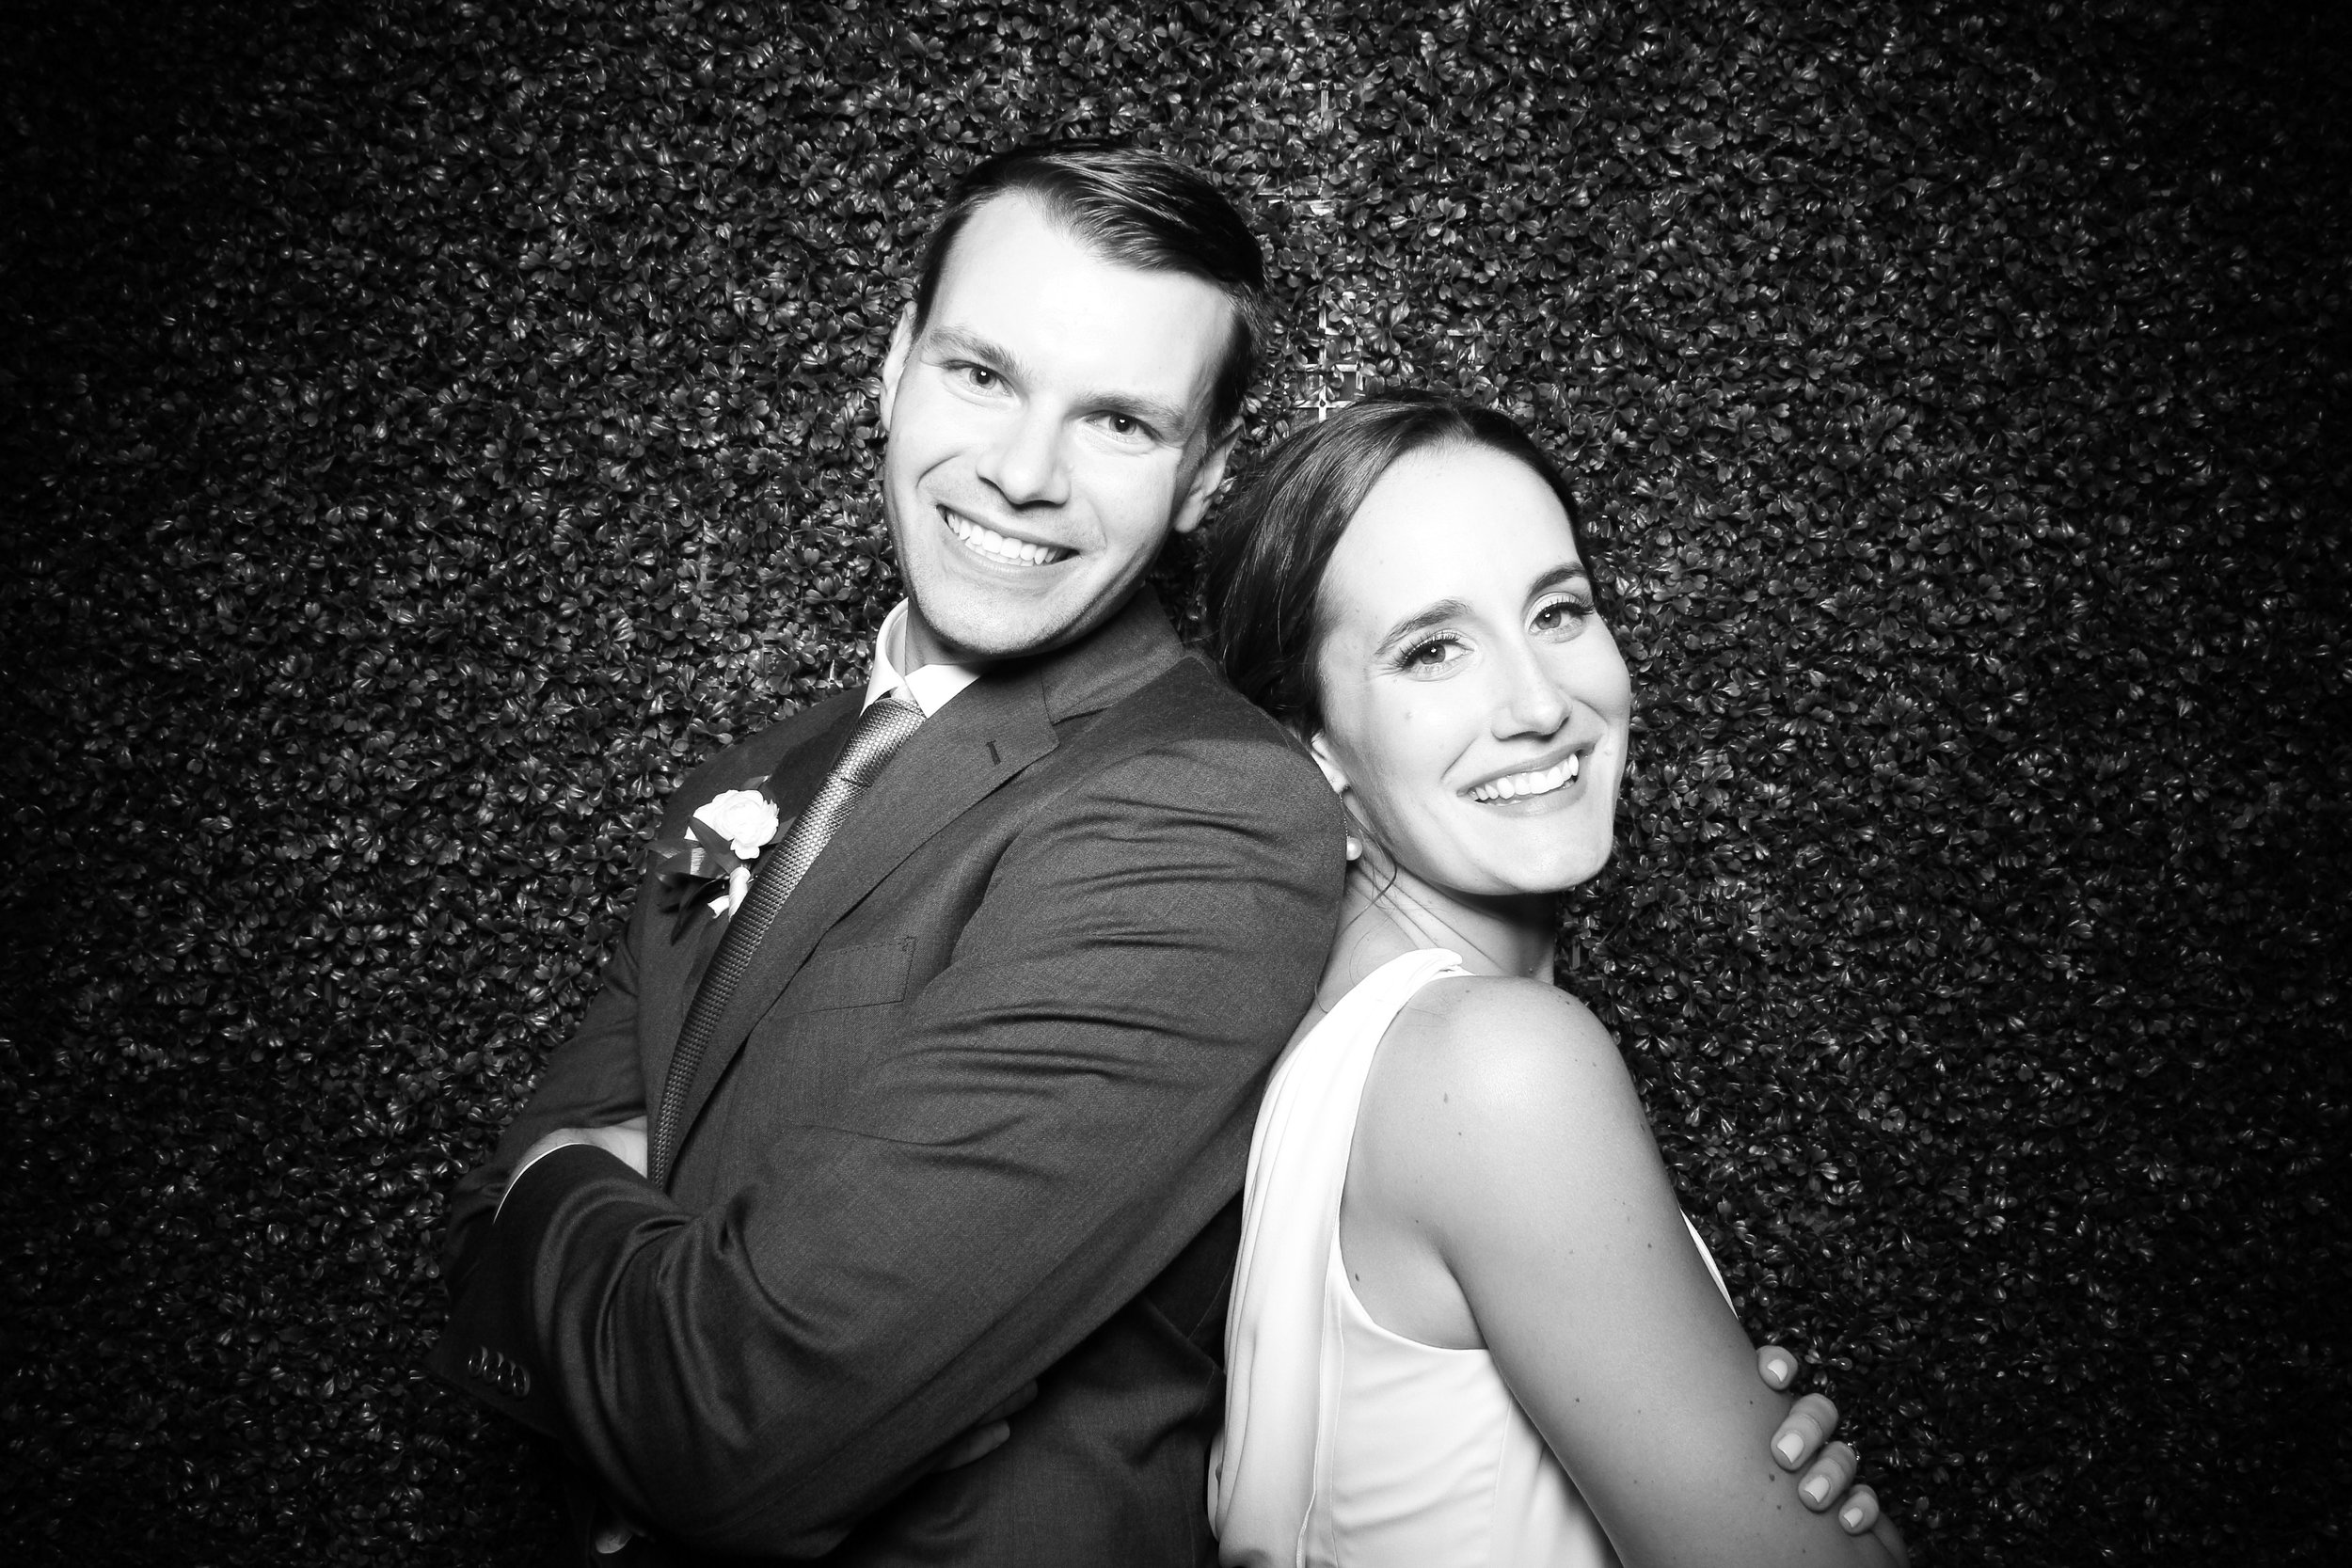 Ivy_Room_Chicago_Photo_Booth_Wedding_12.jpg